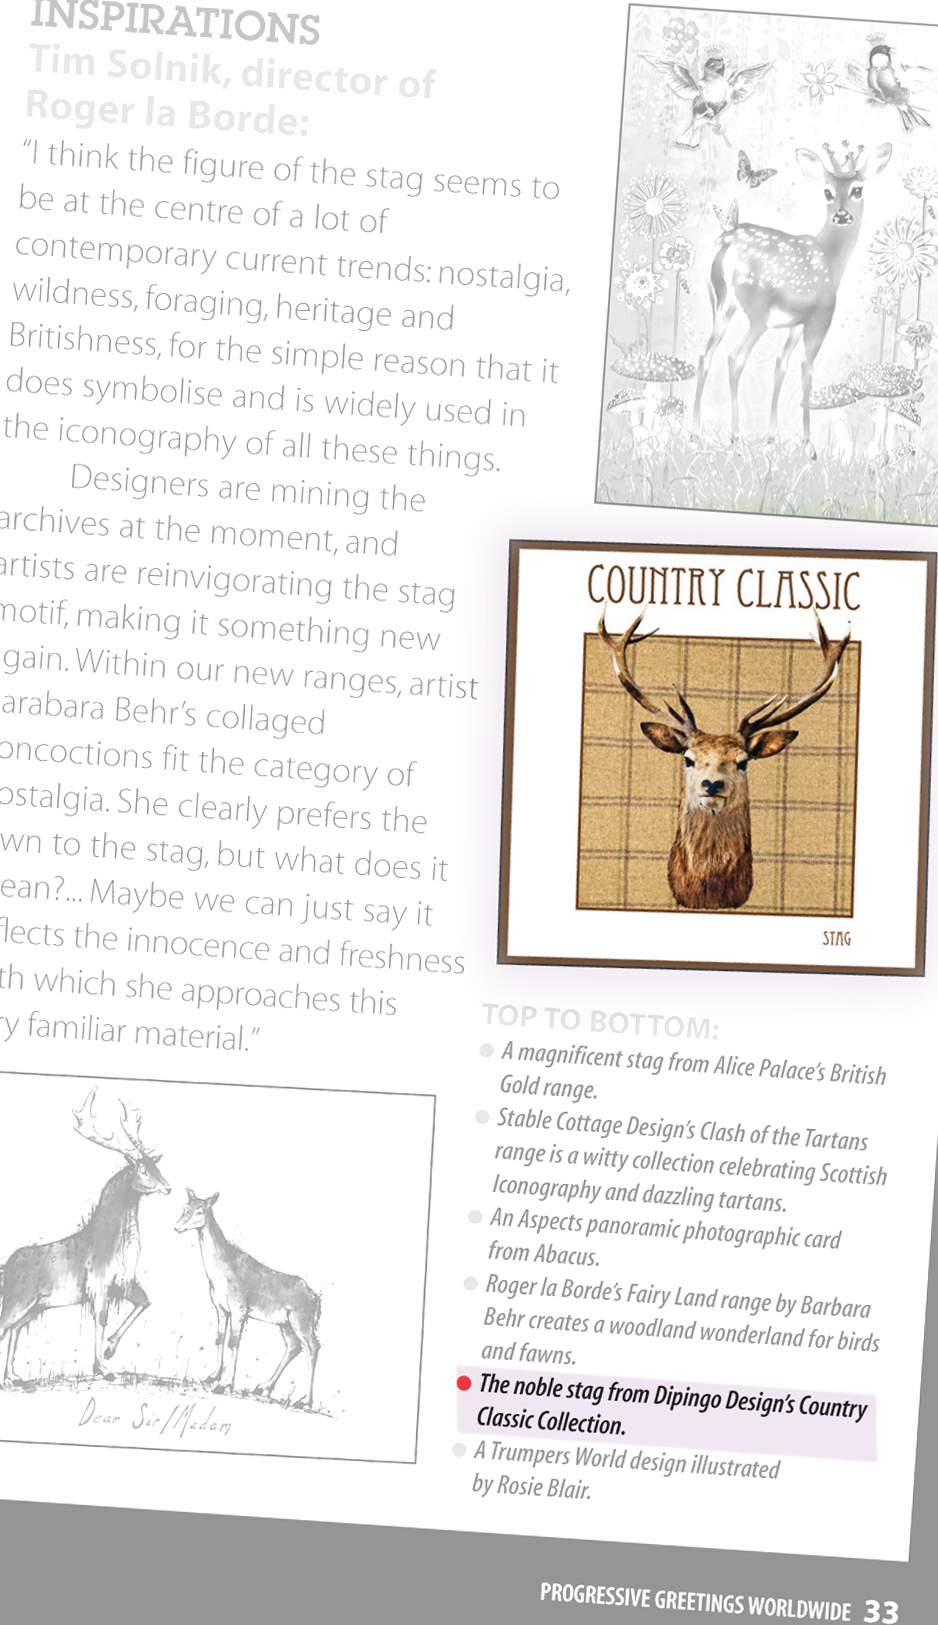 Country Classic - Progressive Greetings March 2012